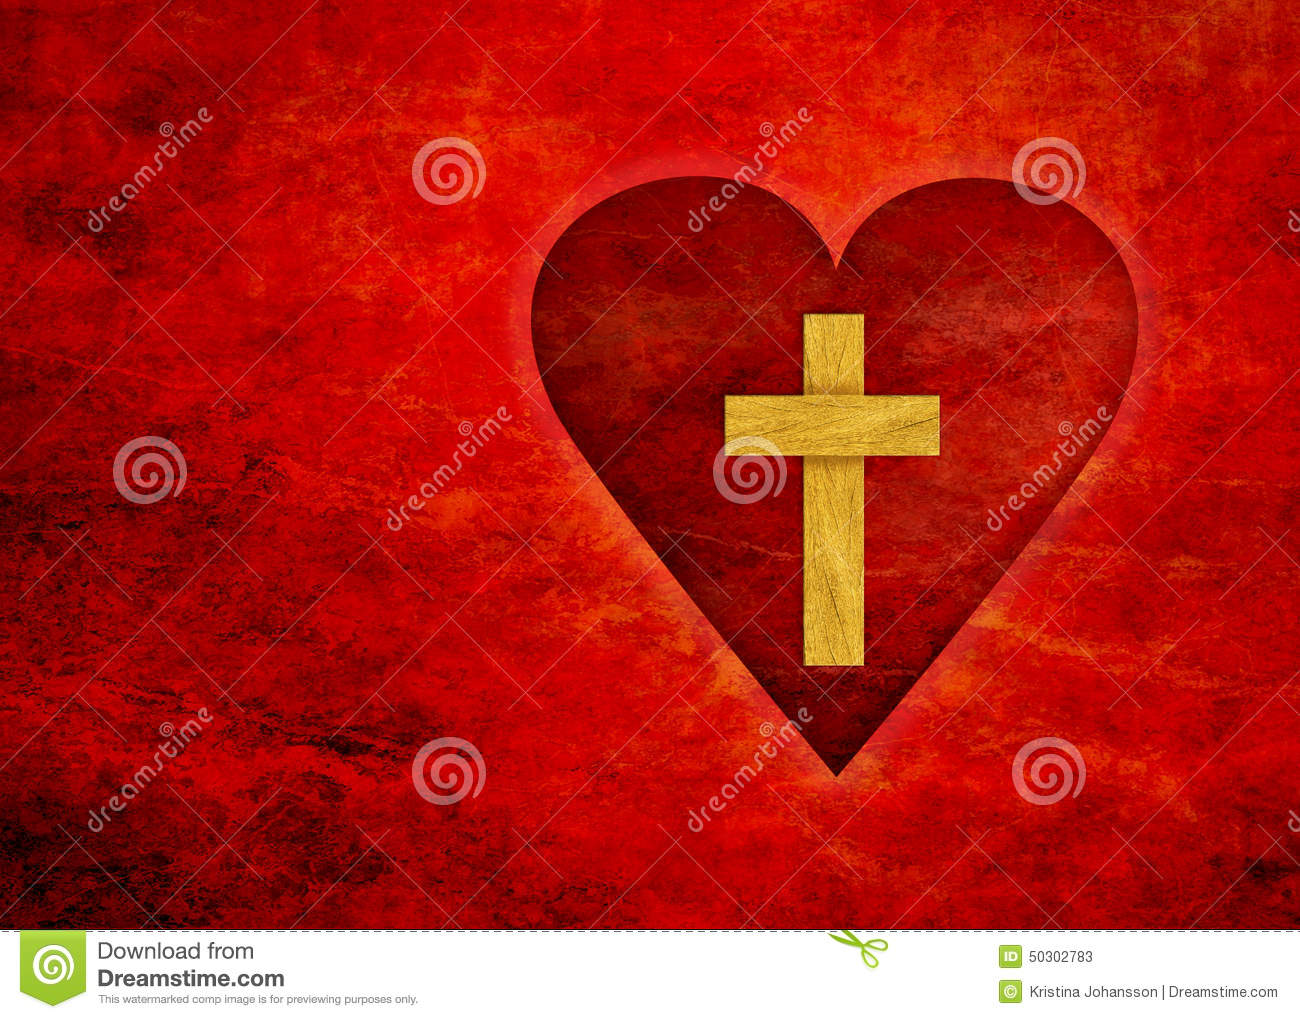 Red Heart With A Cross Stock Image. Image Of Bible, Love